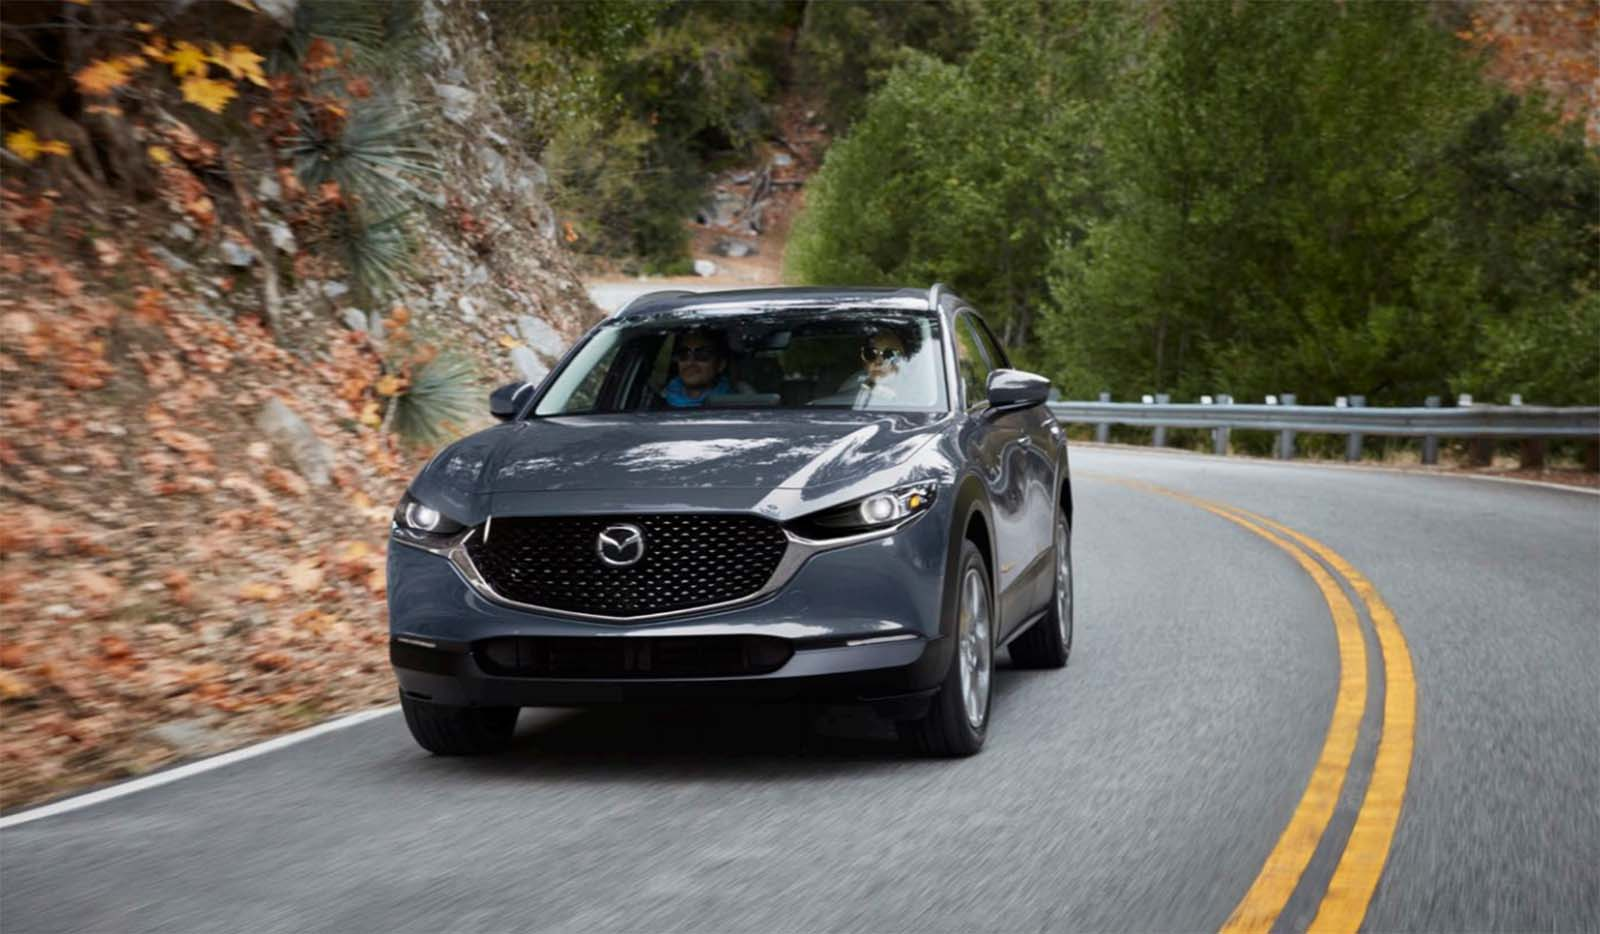 What Makes Mazda Such a Loved Automaker